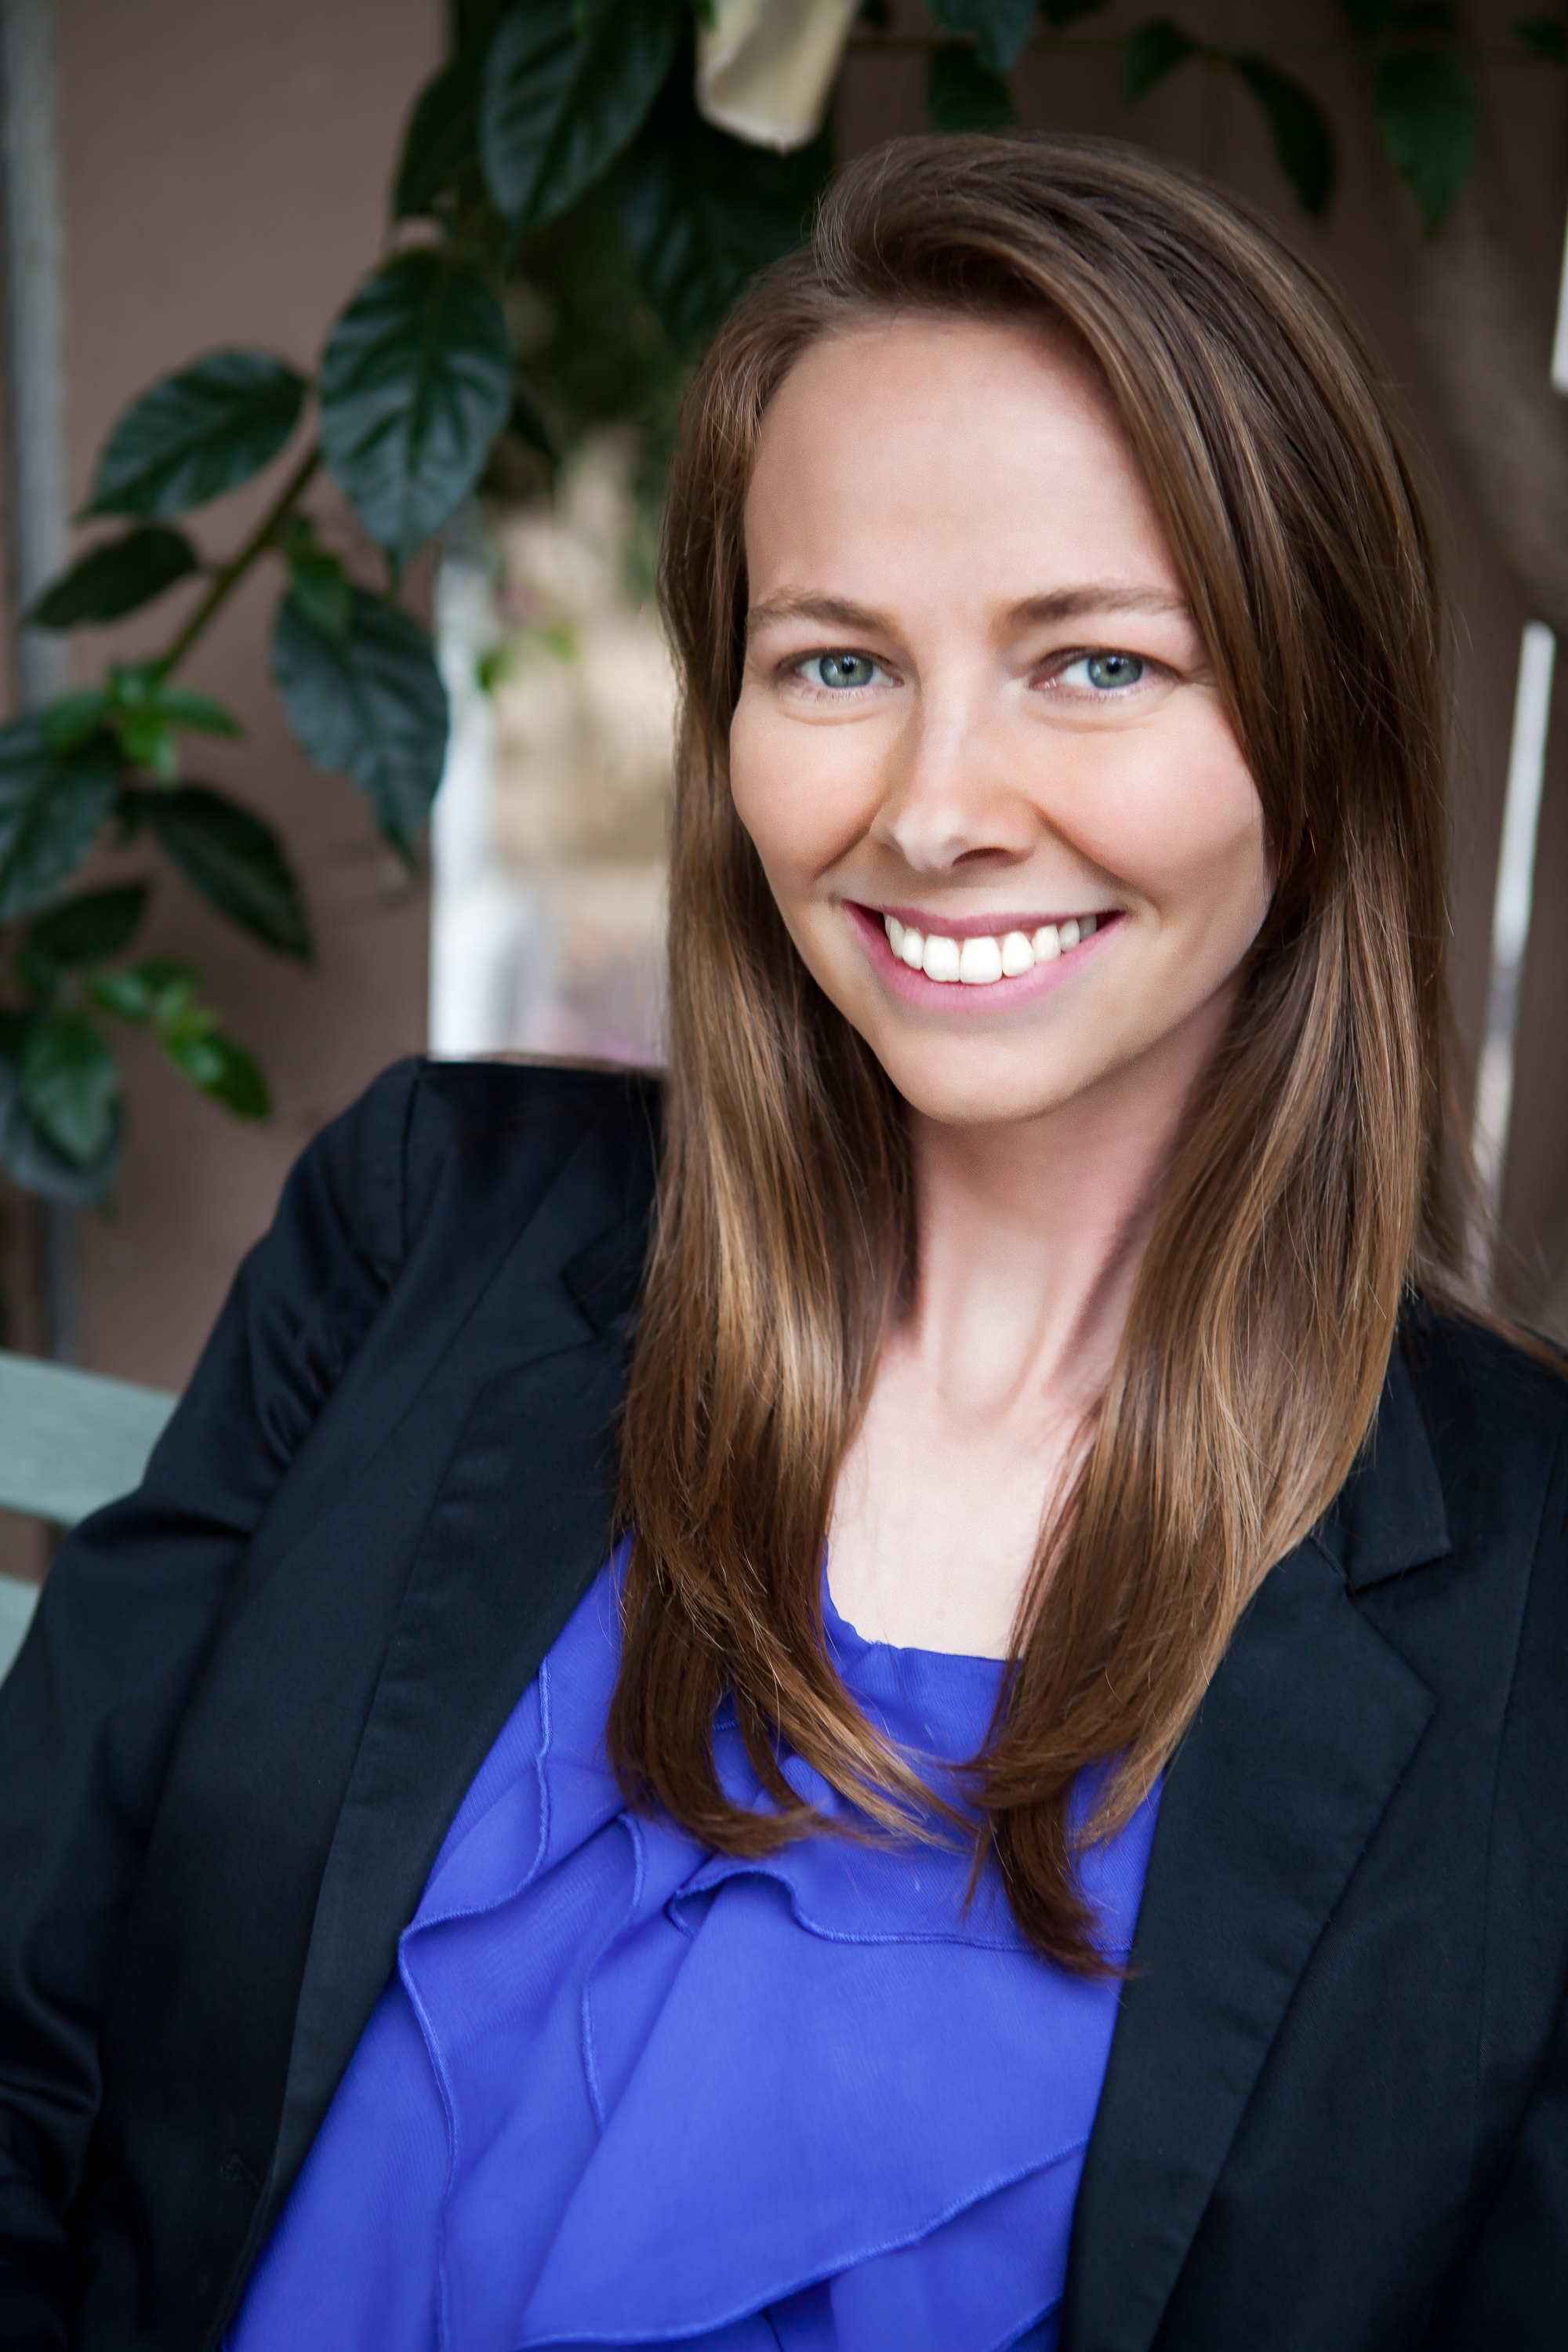 Anna Lenhart, University of Michigan, Ford School of Public Policy   @AnnaCLenhart   As a recent graduate of the Gerald R. Ford School of Public Policy, Anna Lenhart studies the rise of automation and the future of work. She came to this subject after nine years working in both the nonprofit sector and as a technology consultant. She started her career as an AmeriCorps VISTA at Shakti Rising, a women's empowerment organization. In 2013, she founded the Next Generation of Service, an alternative career center for young people interested in Service Year opportunities (now a project of the Service Year Alliance).